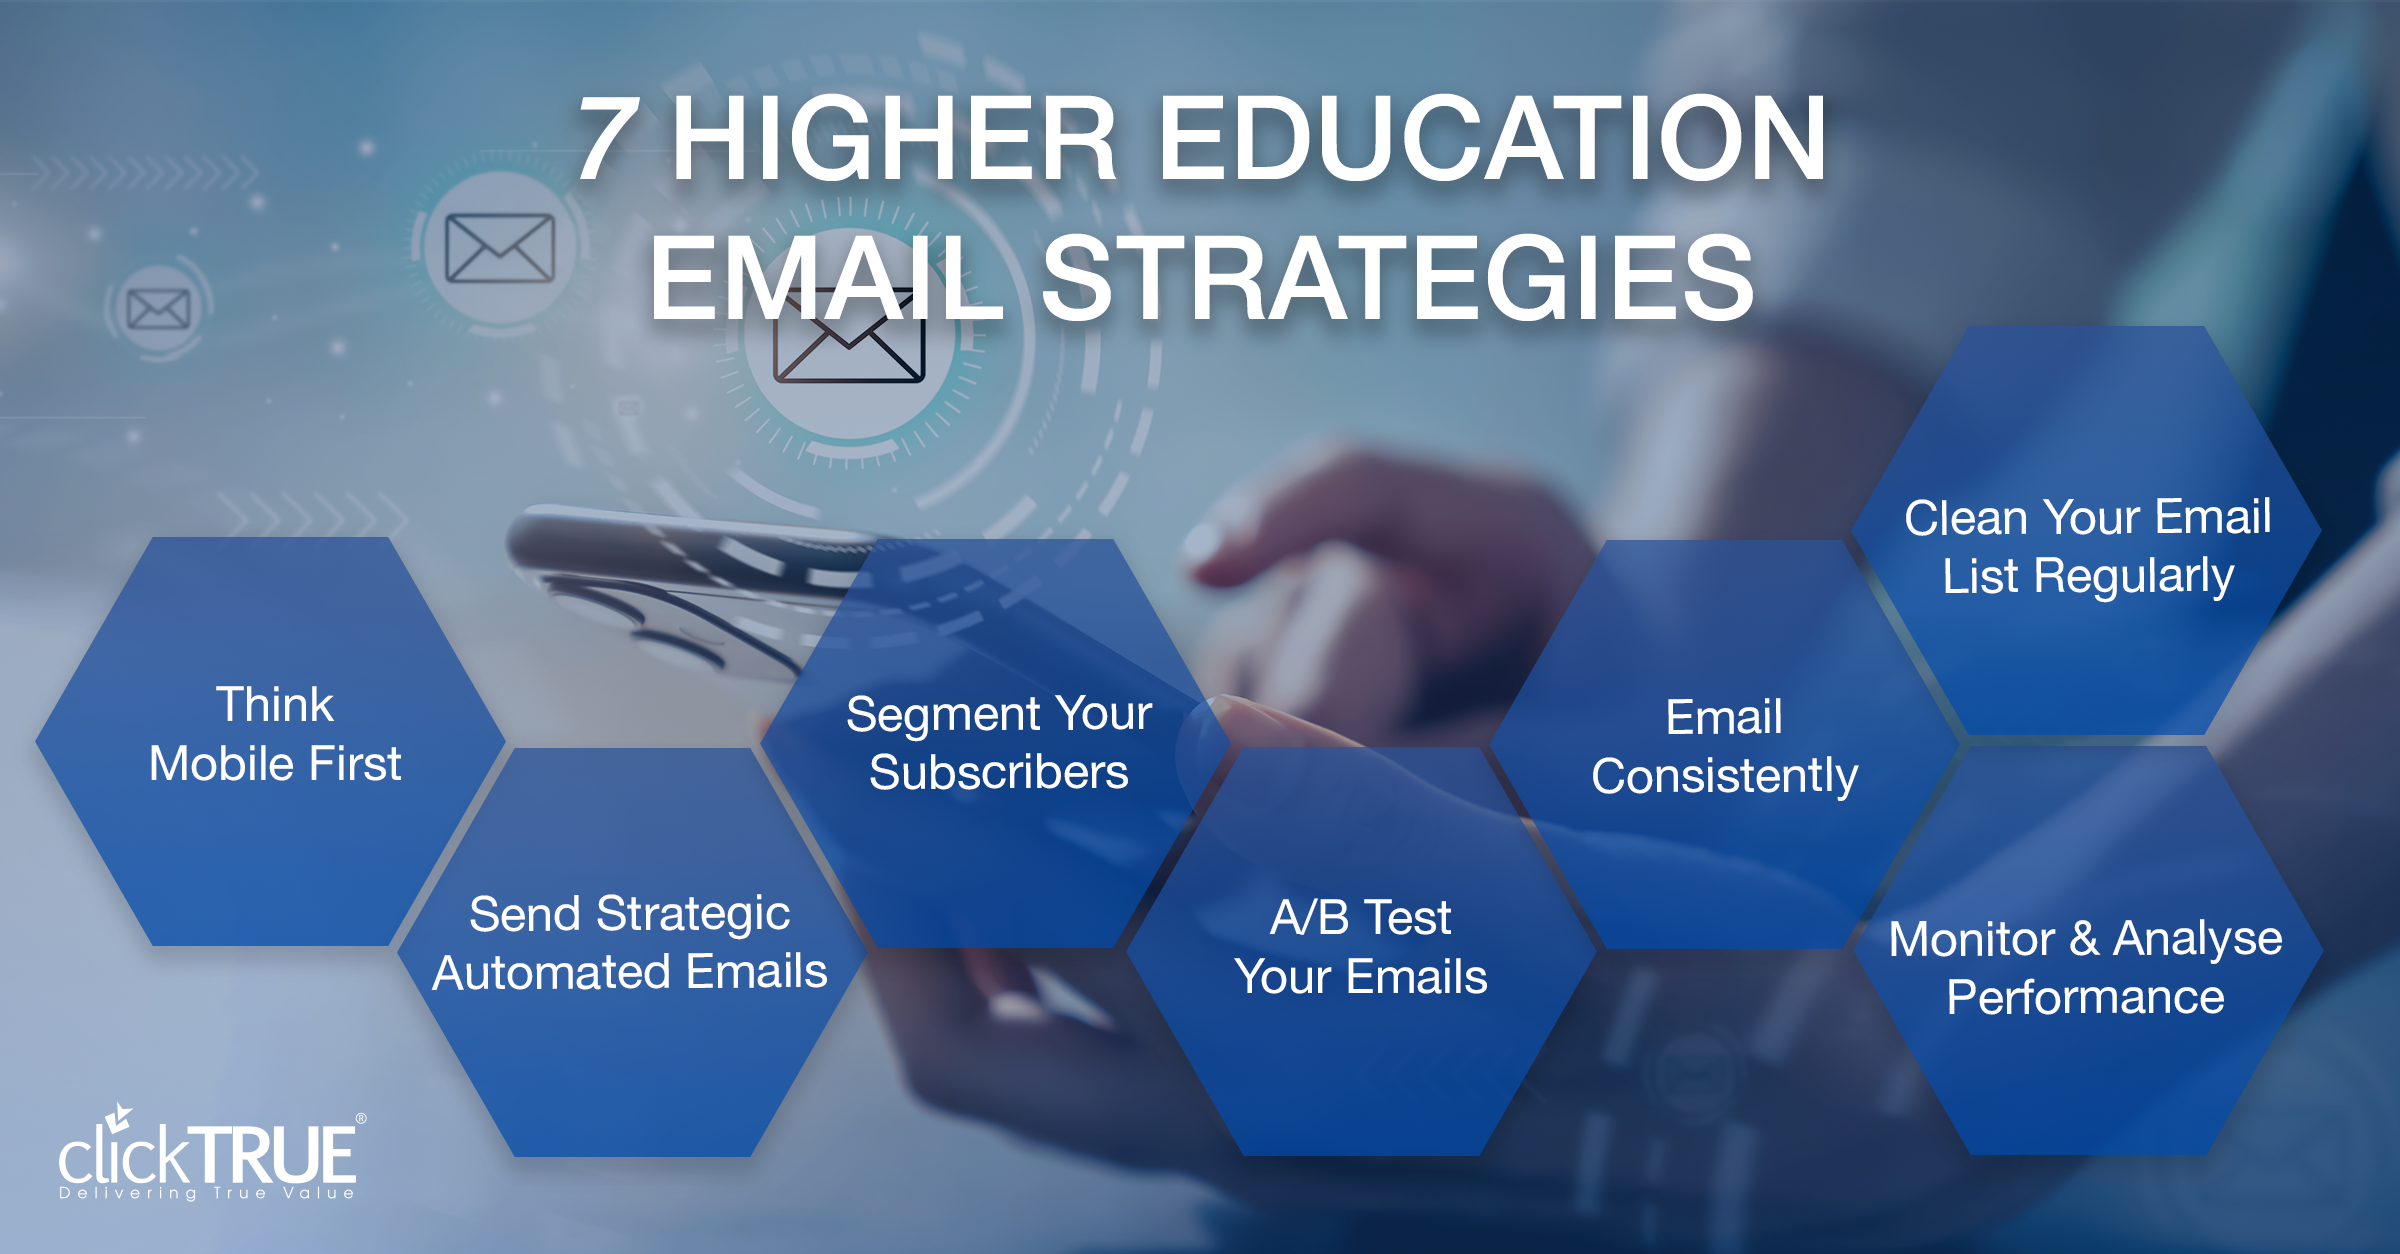 7 Higher Education Email Marketing Strategies